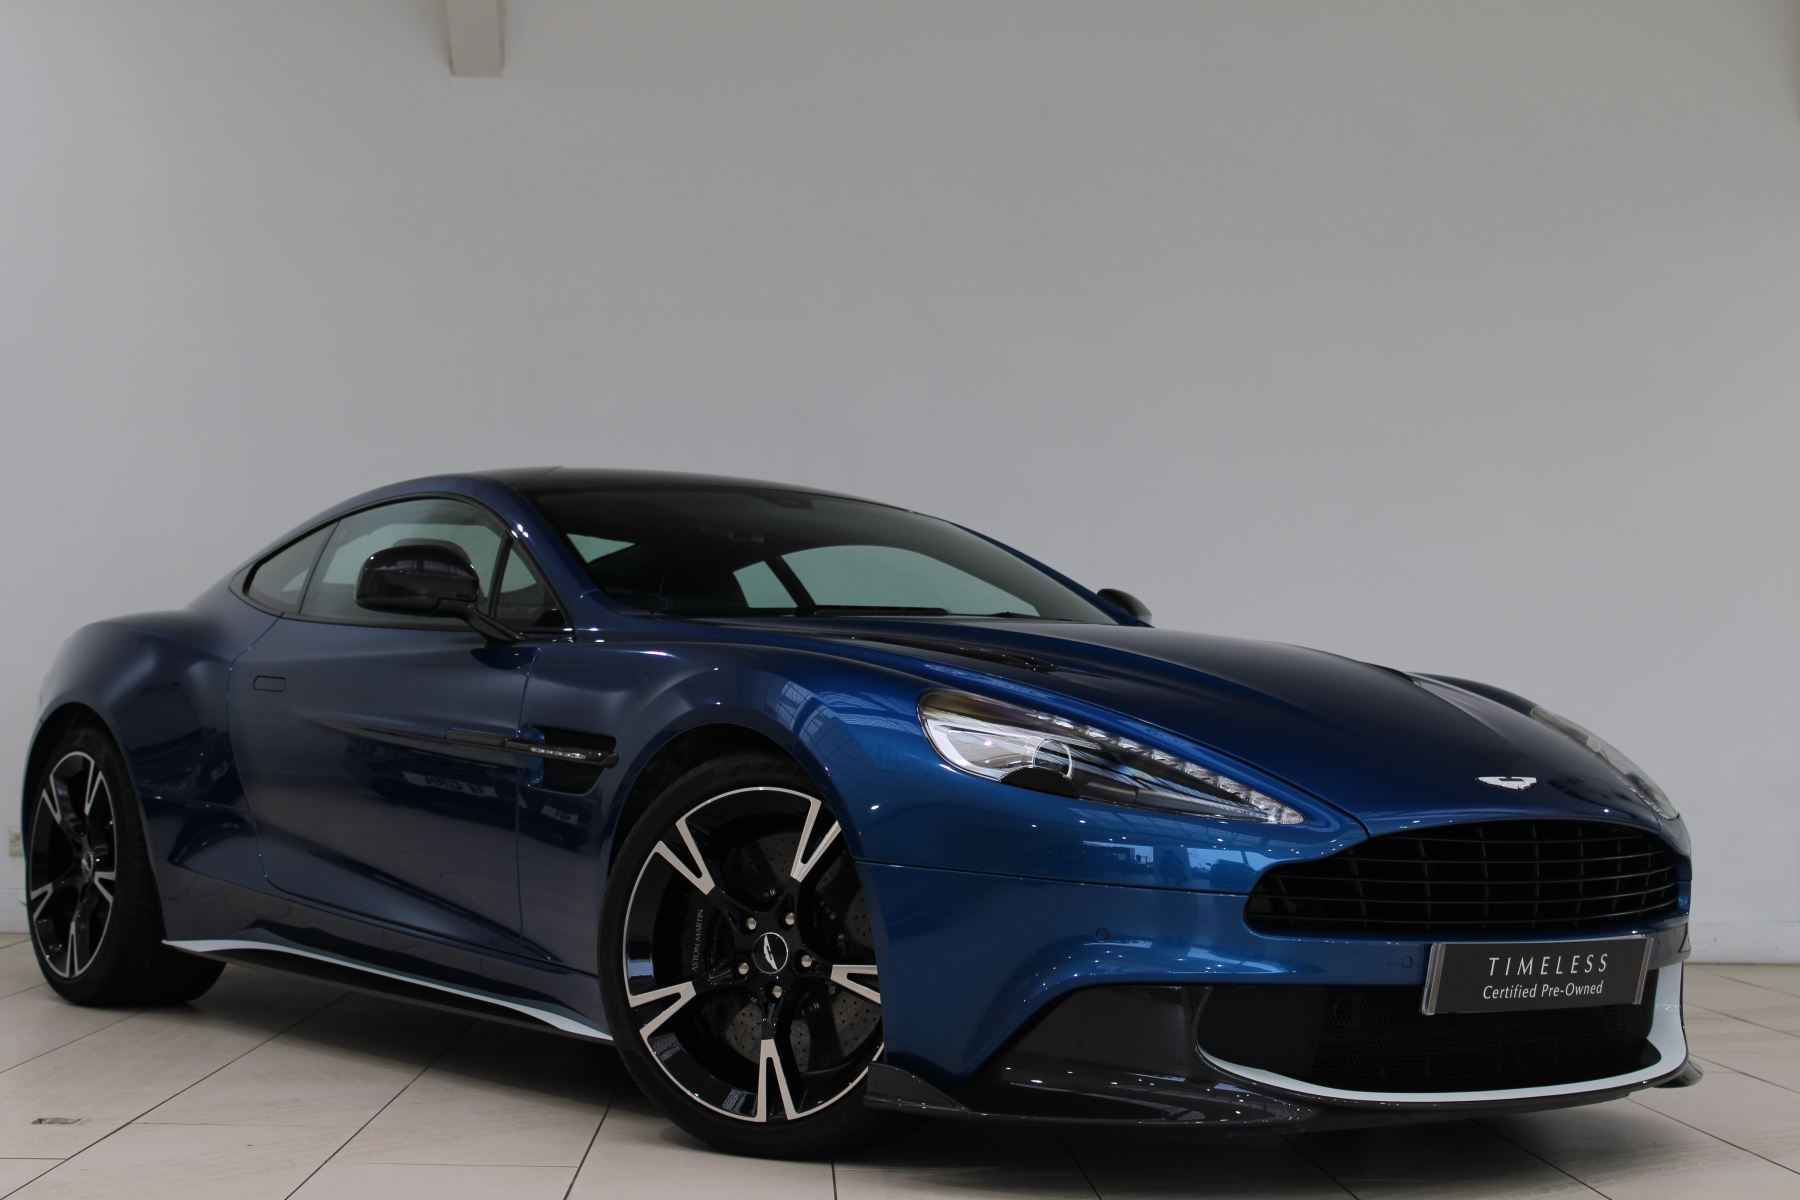 Aston Martin Vanquish V12 [595] S 2+2 Touchtronic Graphics Pack 5935.0 Automatic 2 door Coupe